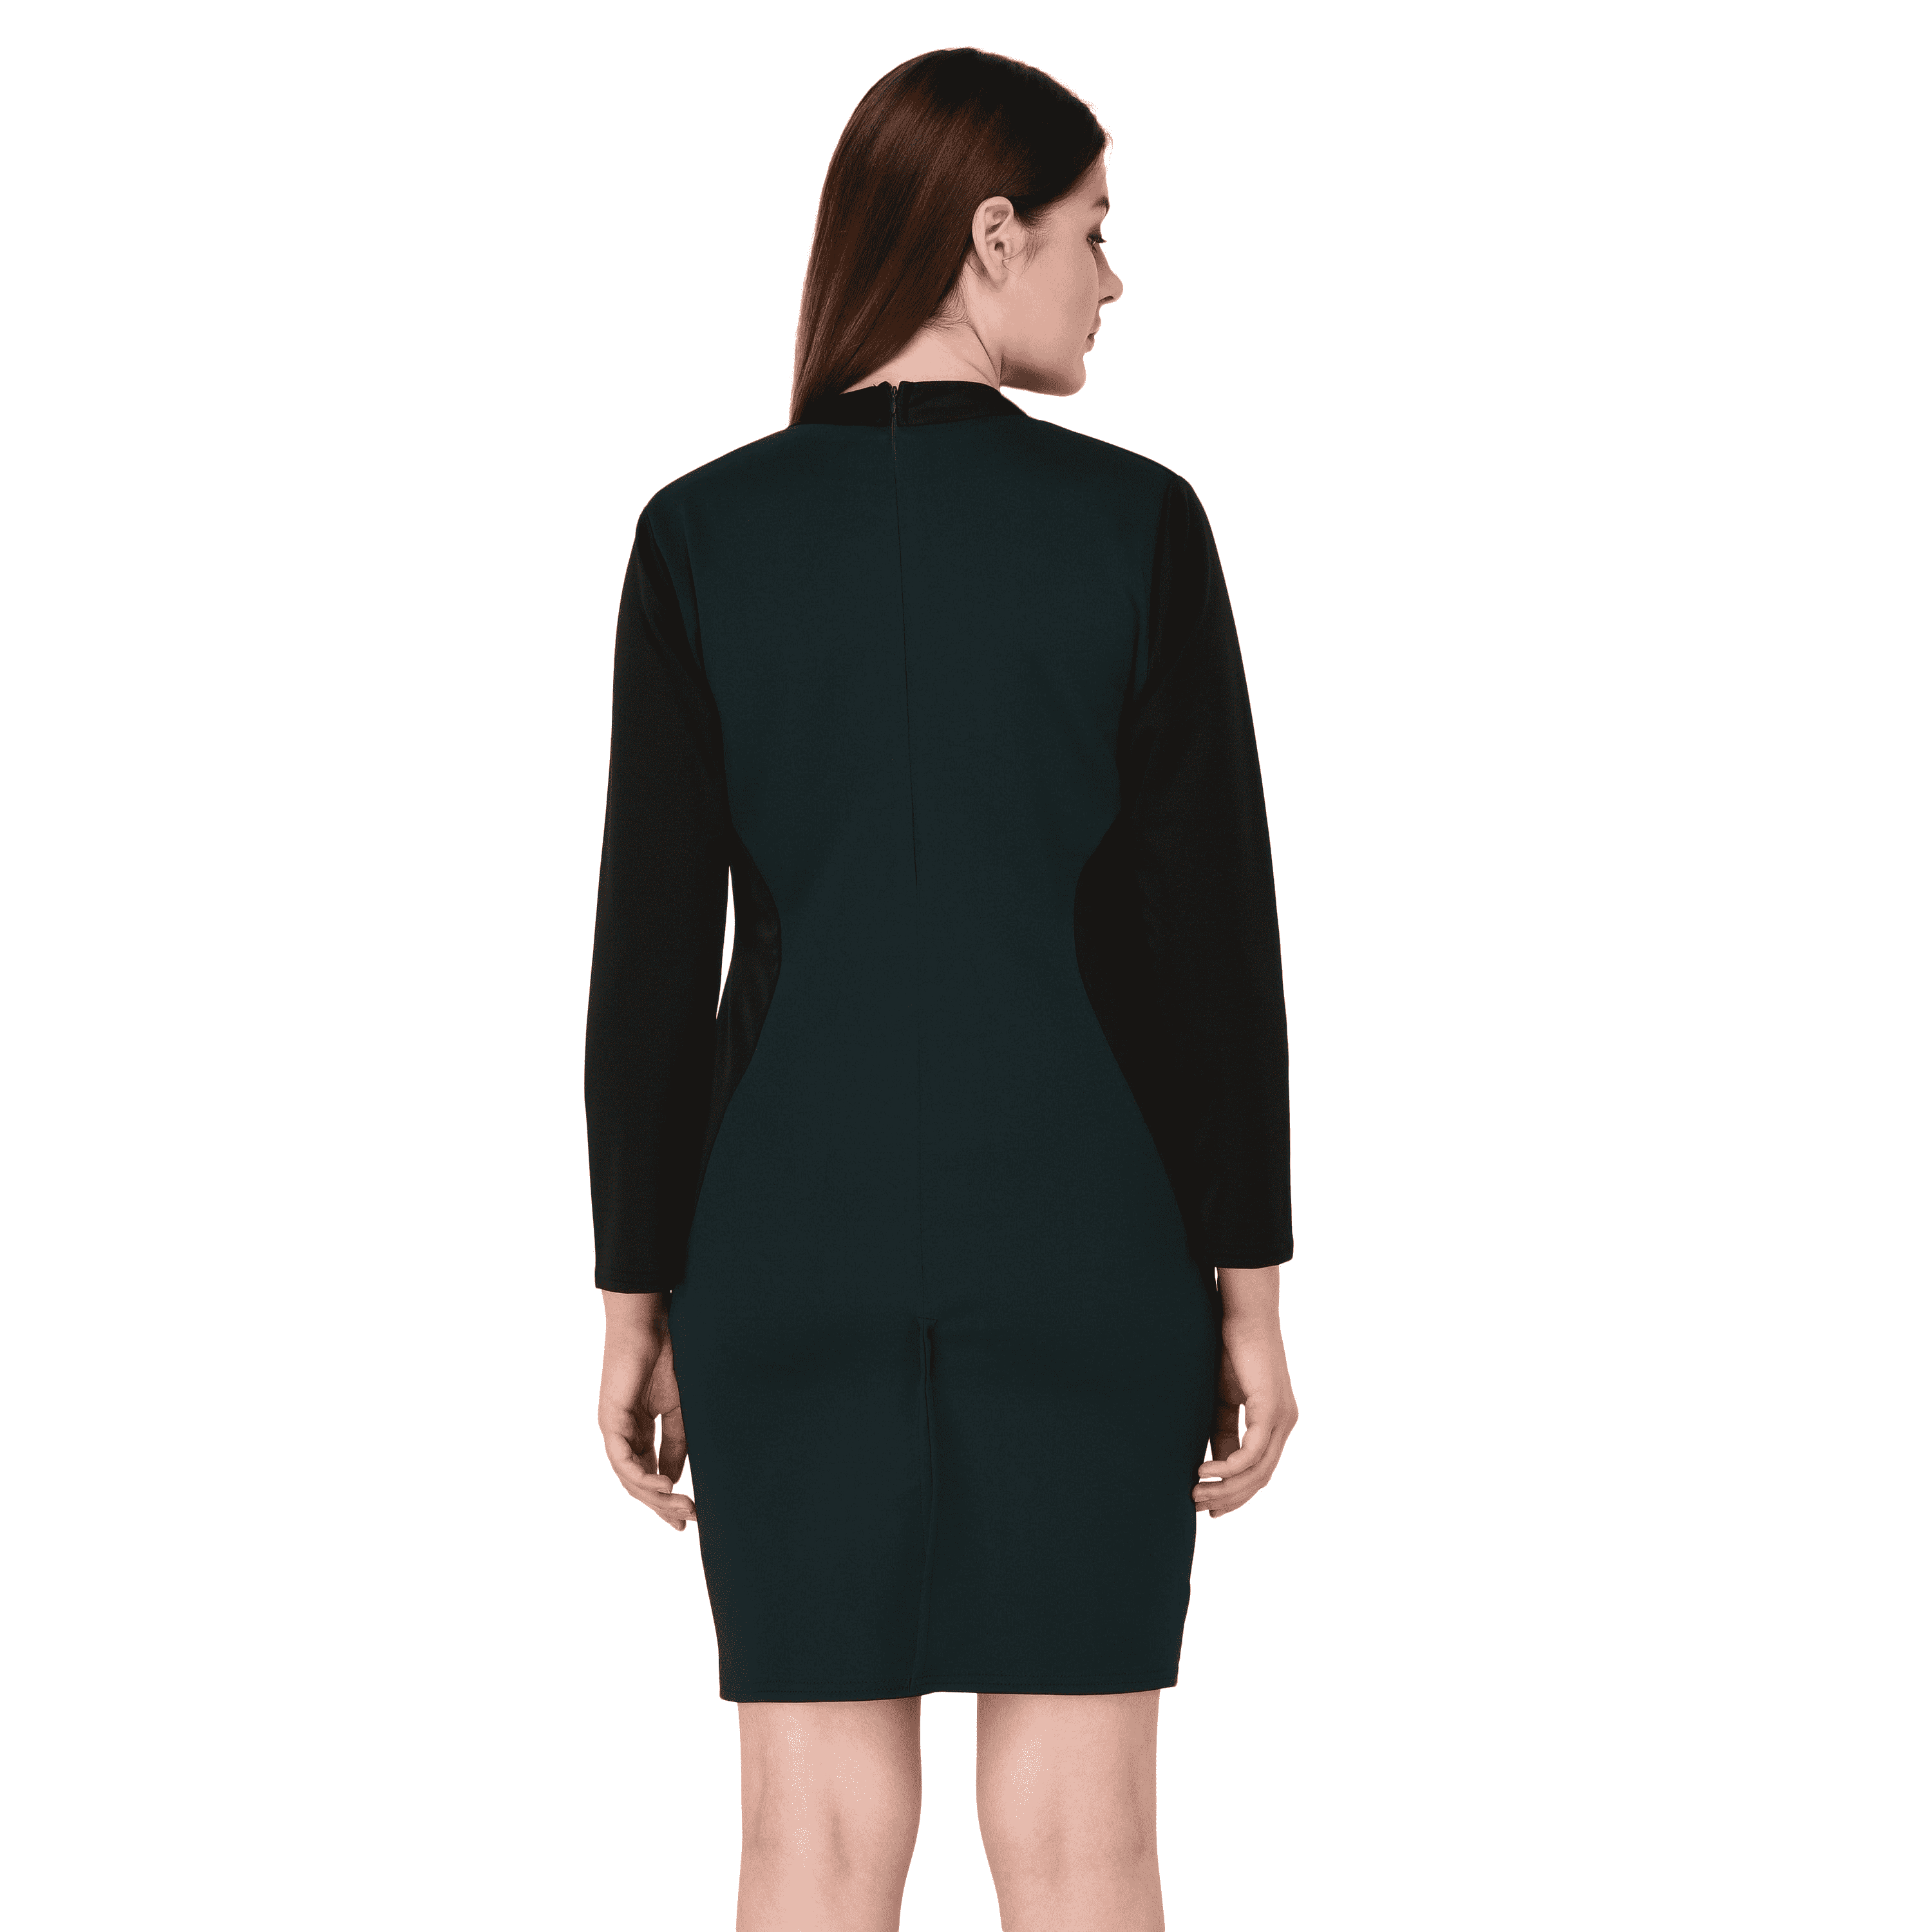 Panelled Dress Green - NIXX Clothing